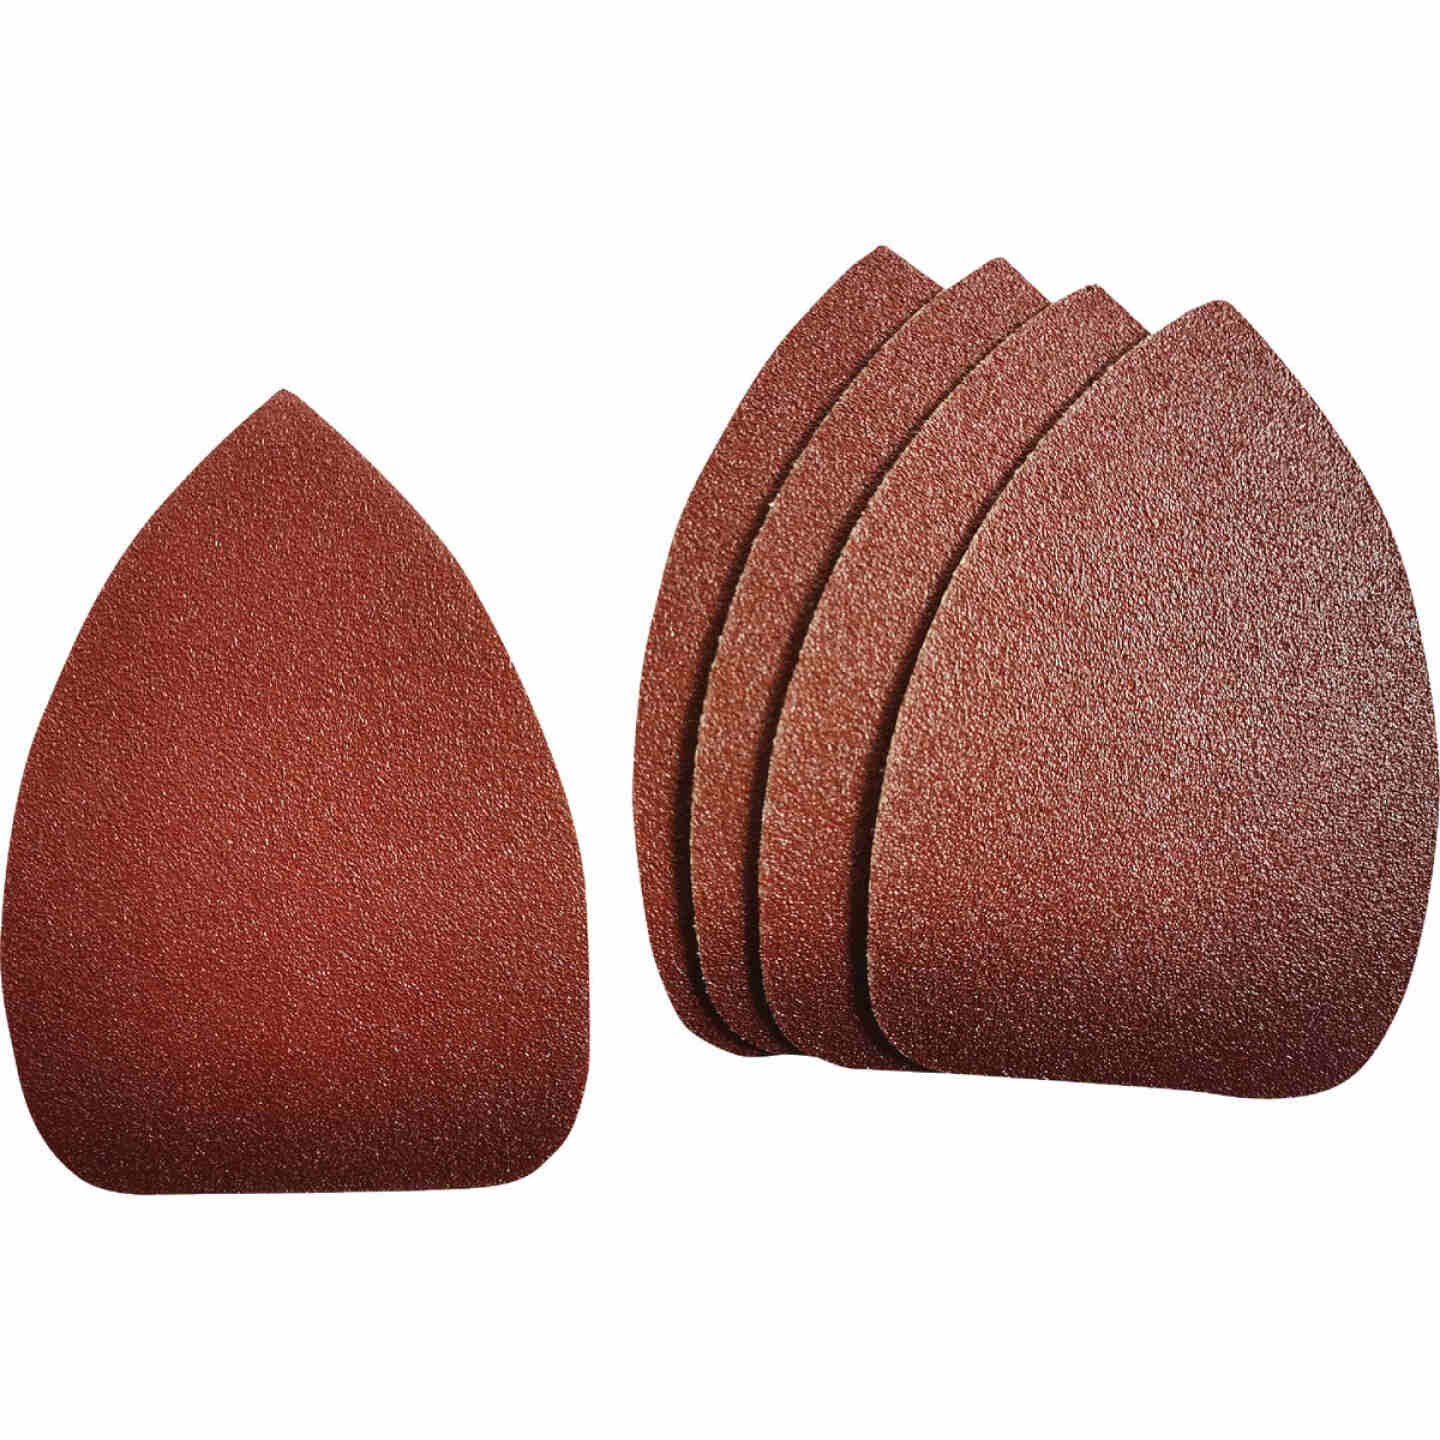 Boss 100 Grit Mouse Sandpaper (5-Pack) Image 2